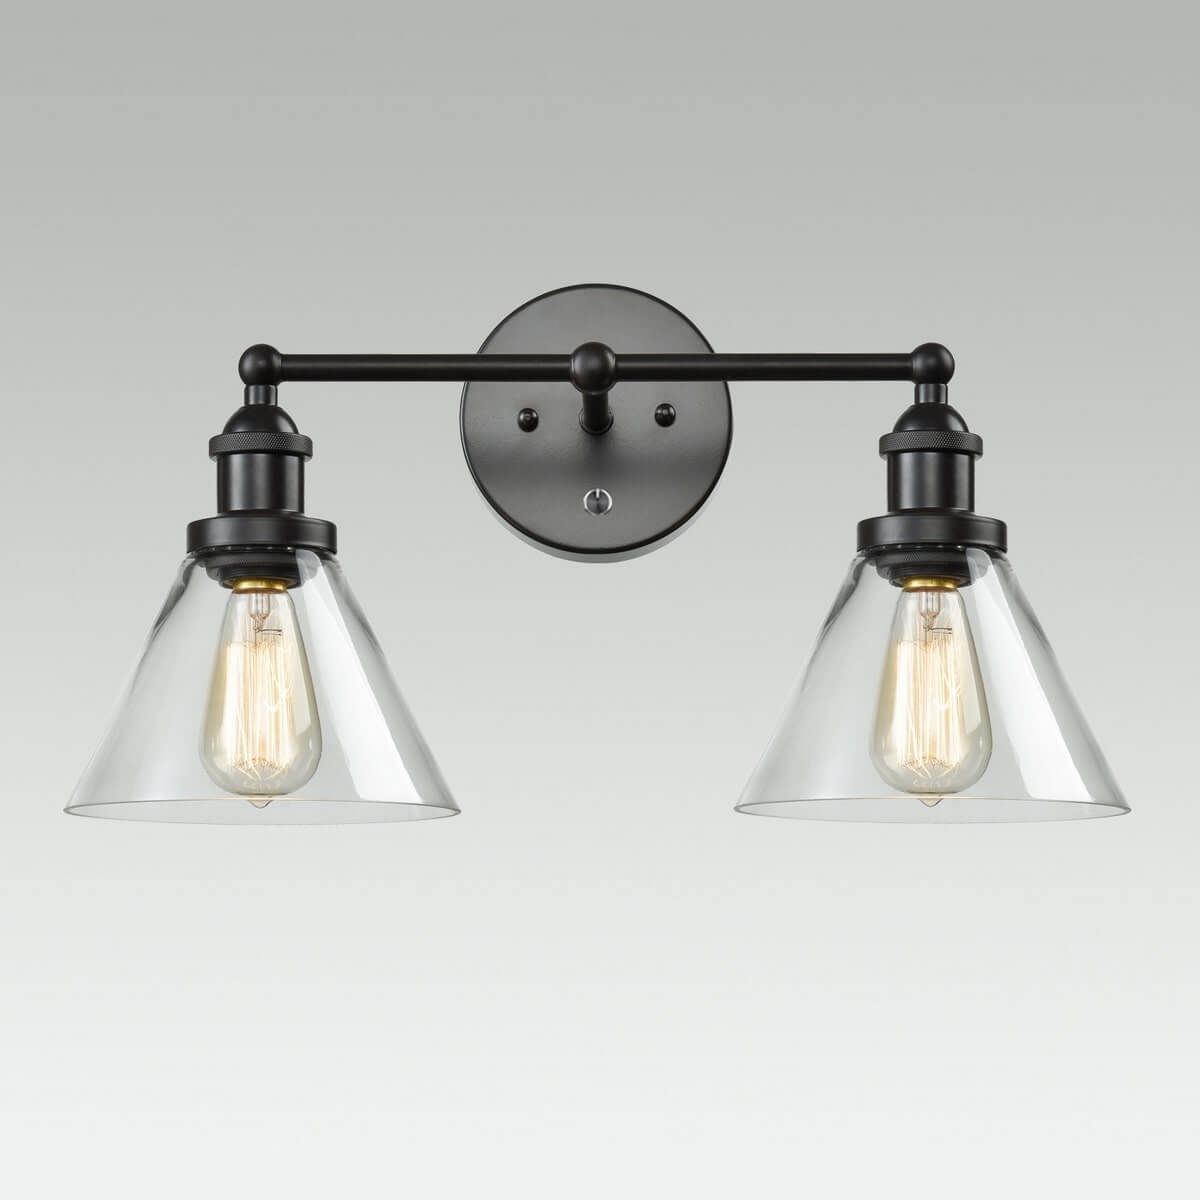 Oil Rubbed Bronze 2 Light Glass Hardwired & Plug in Wall Sconce